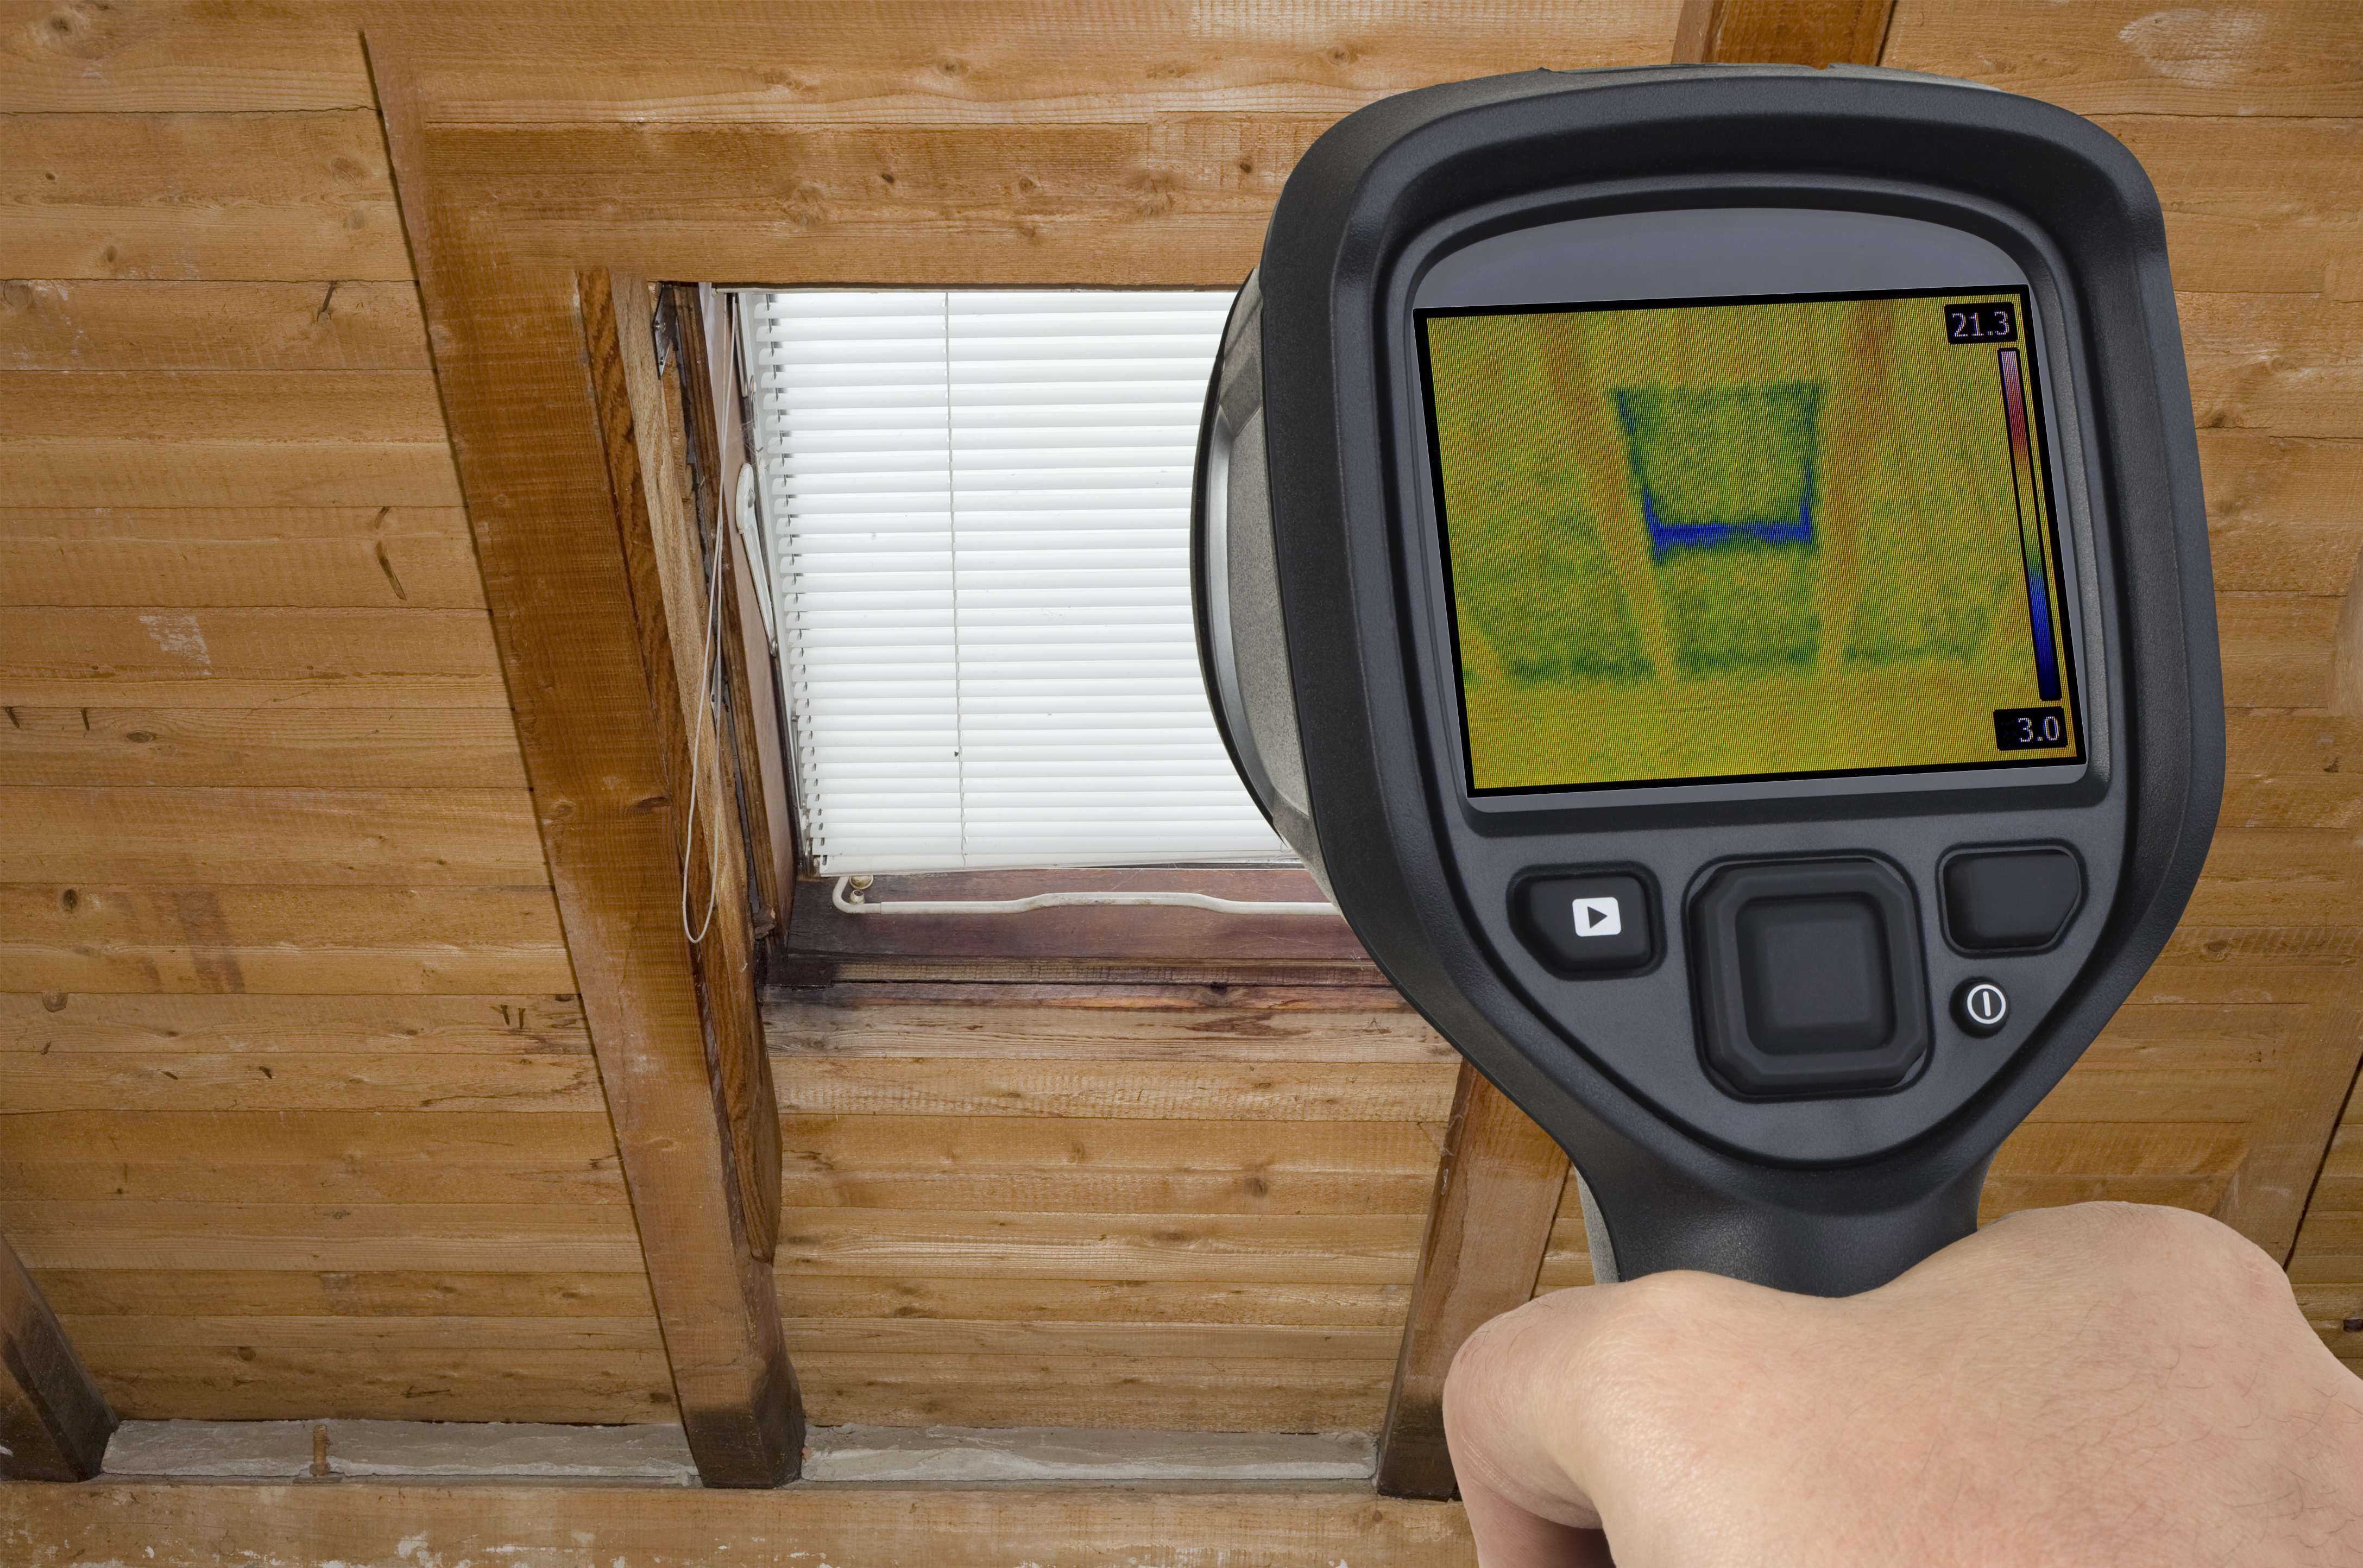 thermal imager attic window